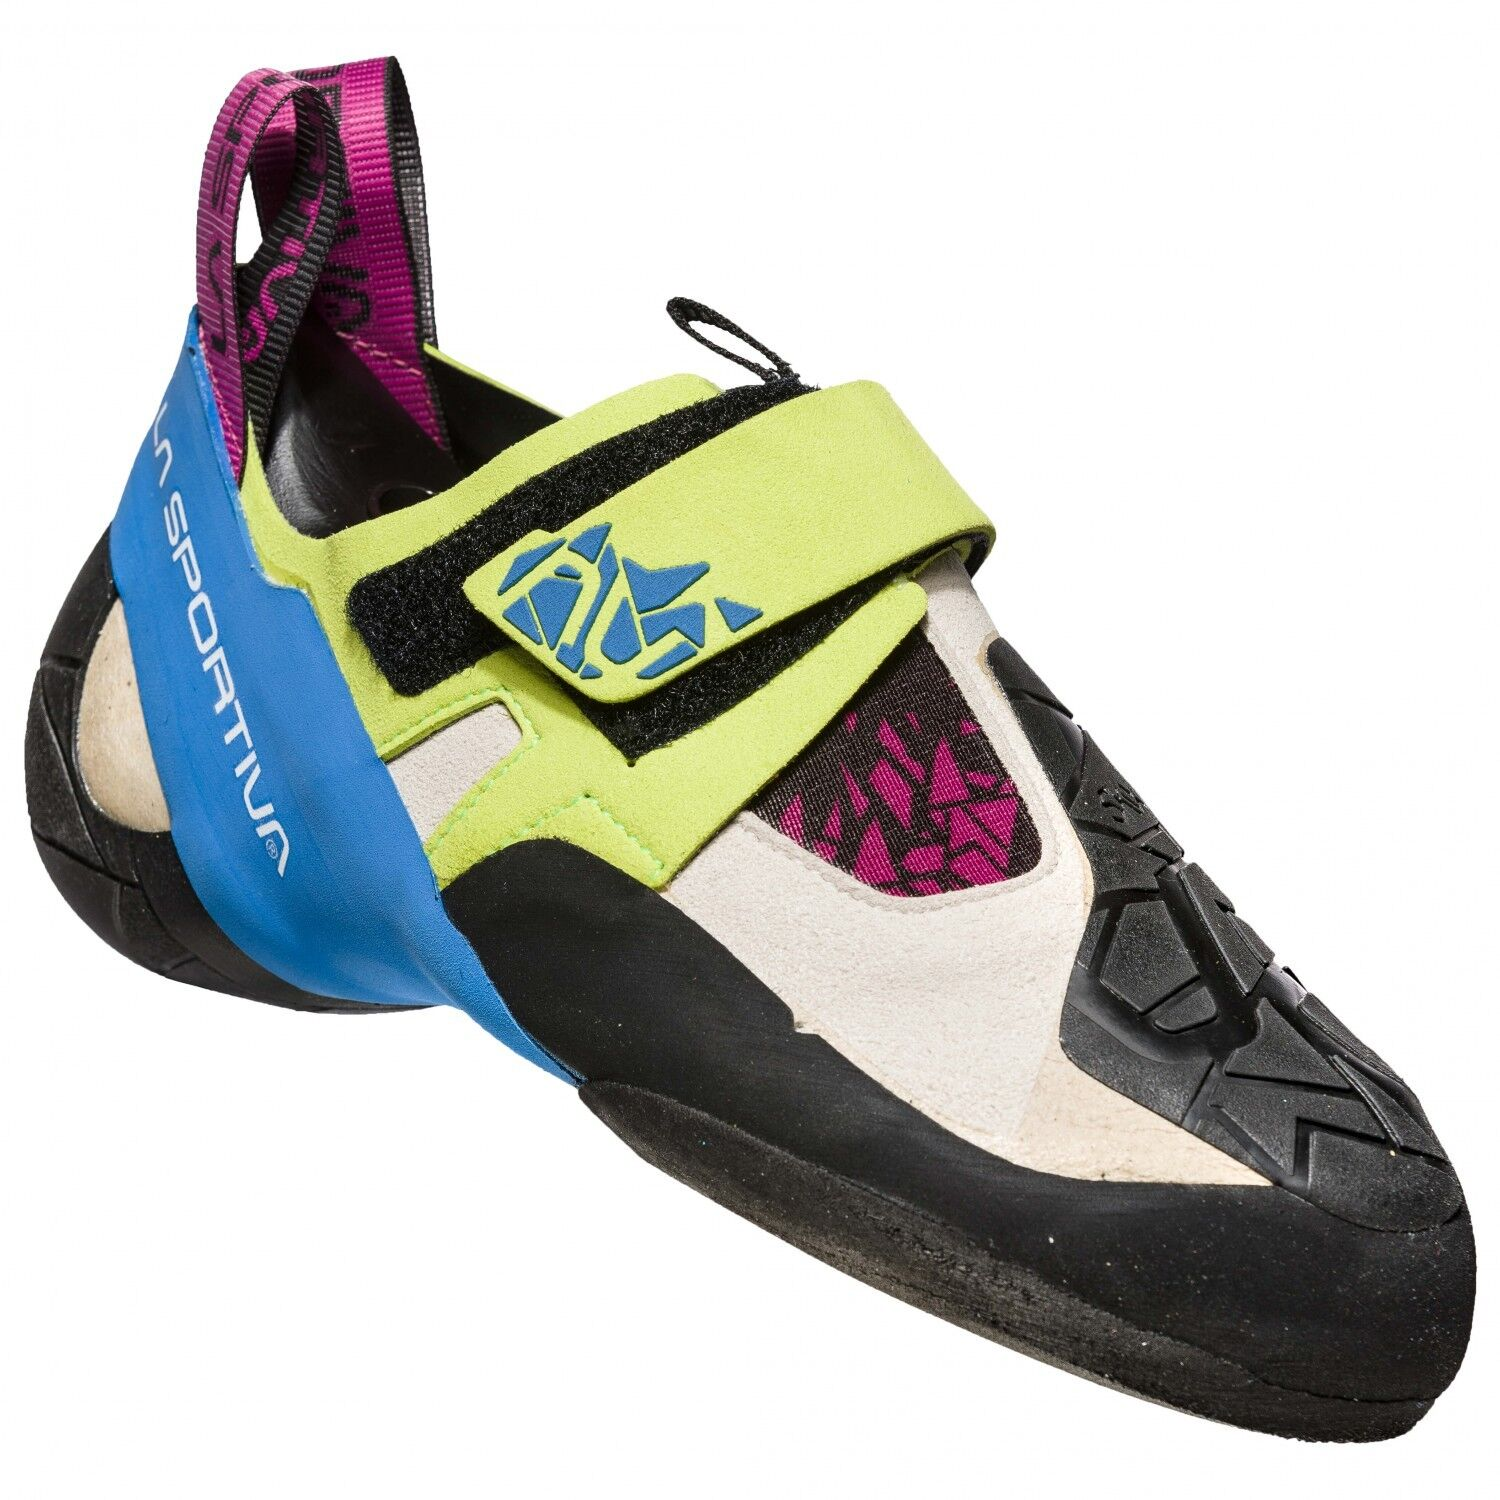 La Sportiva SKWAMA WOMAN - Footwear climbing - Ask for your size